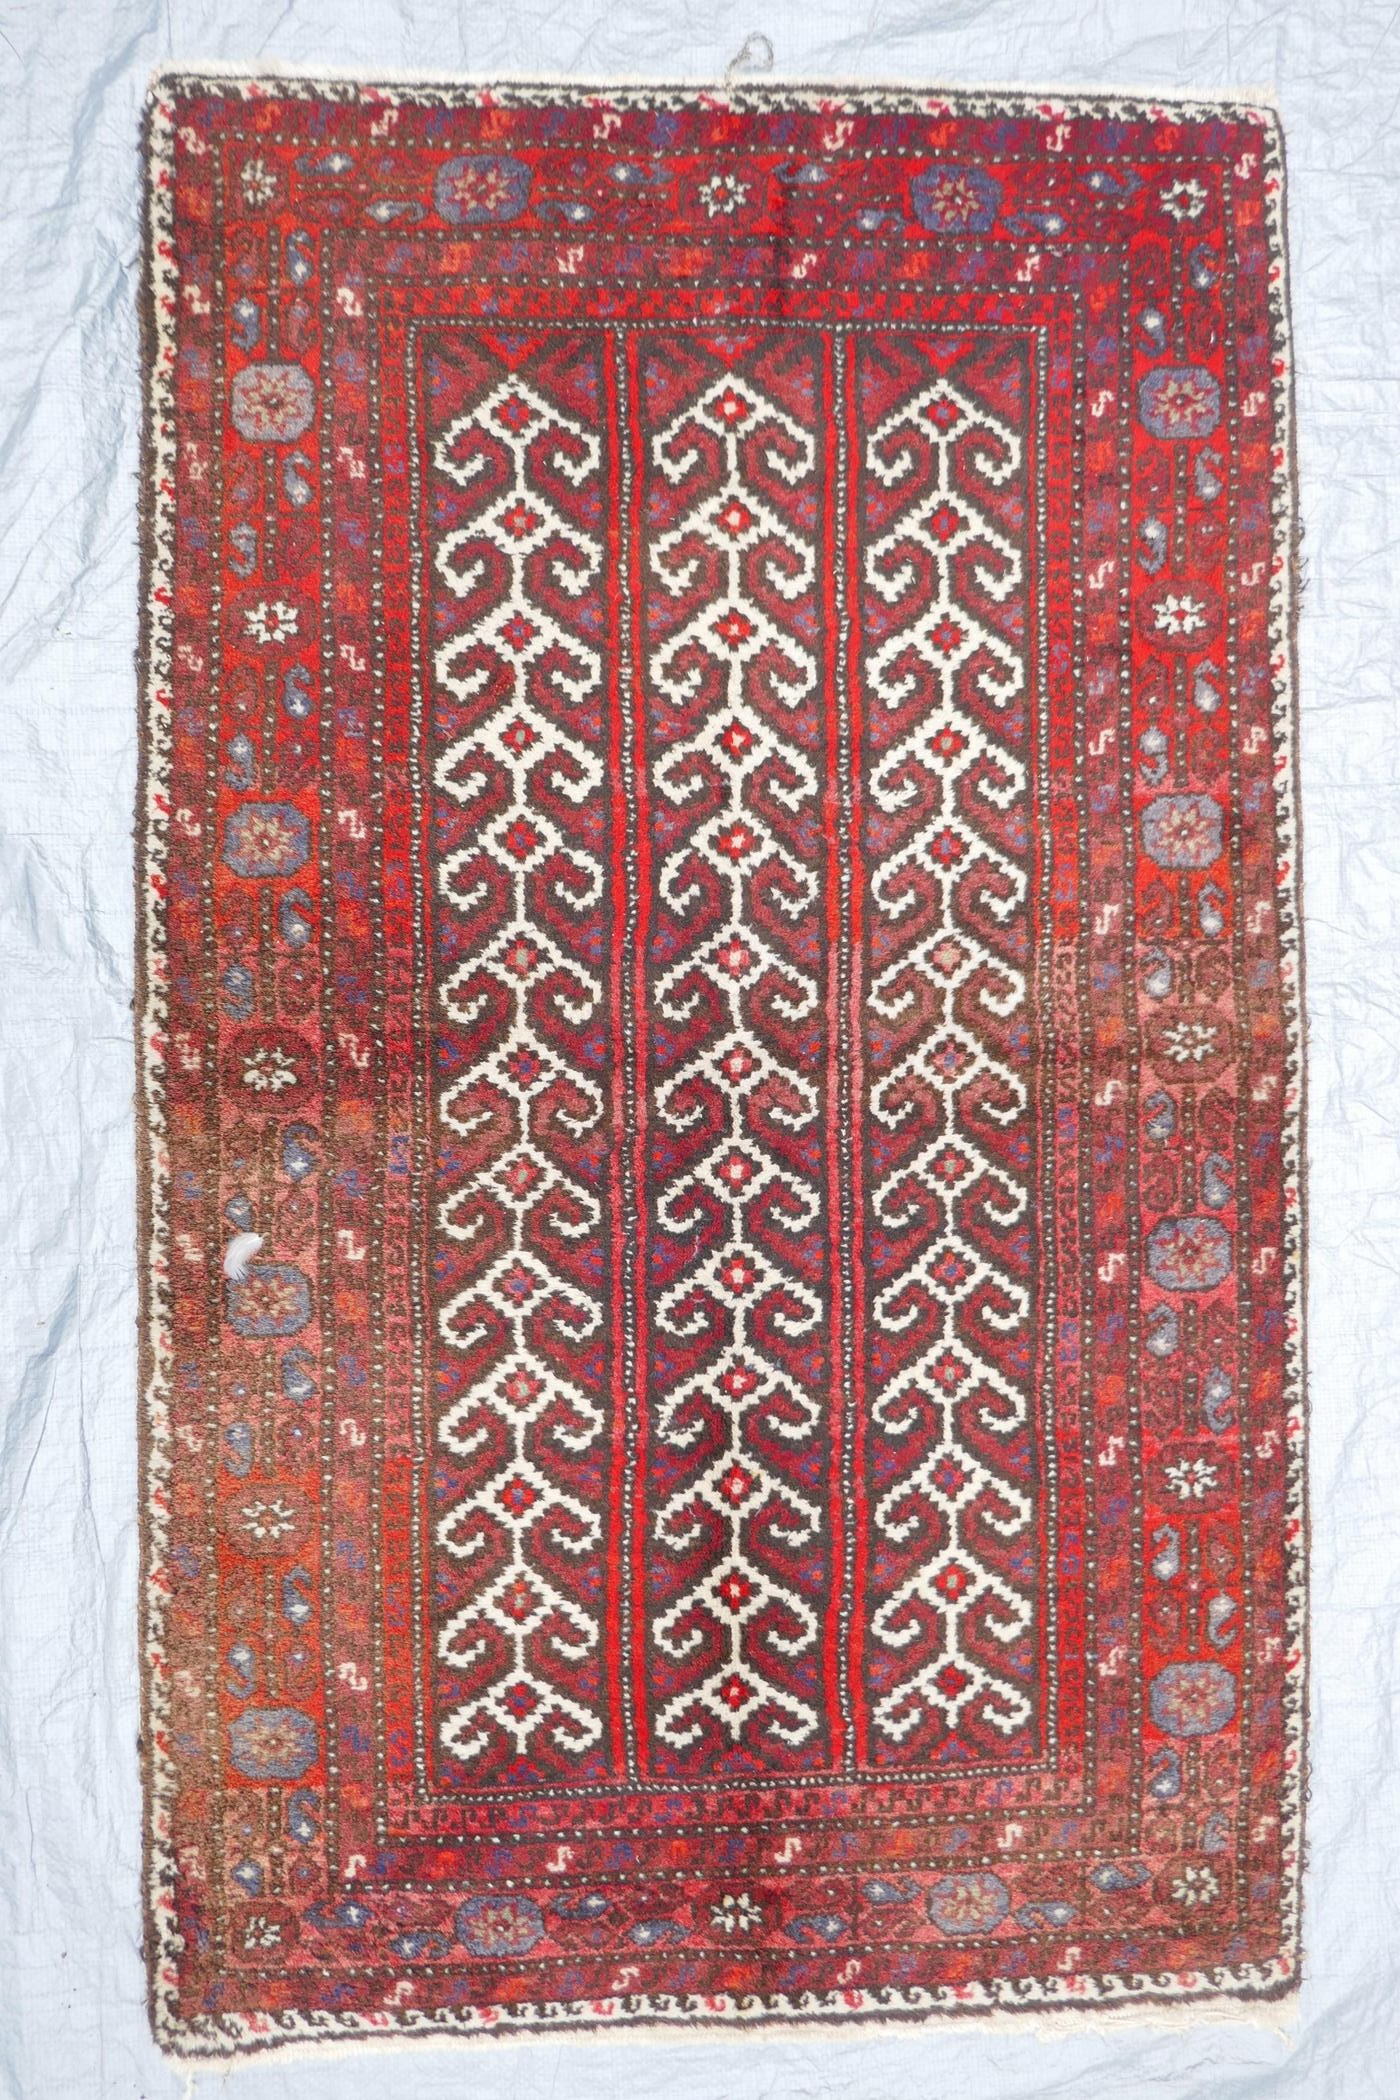 """A Middle Eastern full pile red ground wool rug with a three panel geometric design, 34"""" x 56"""" - Image 2 of 4"""